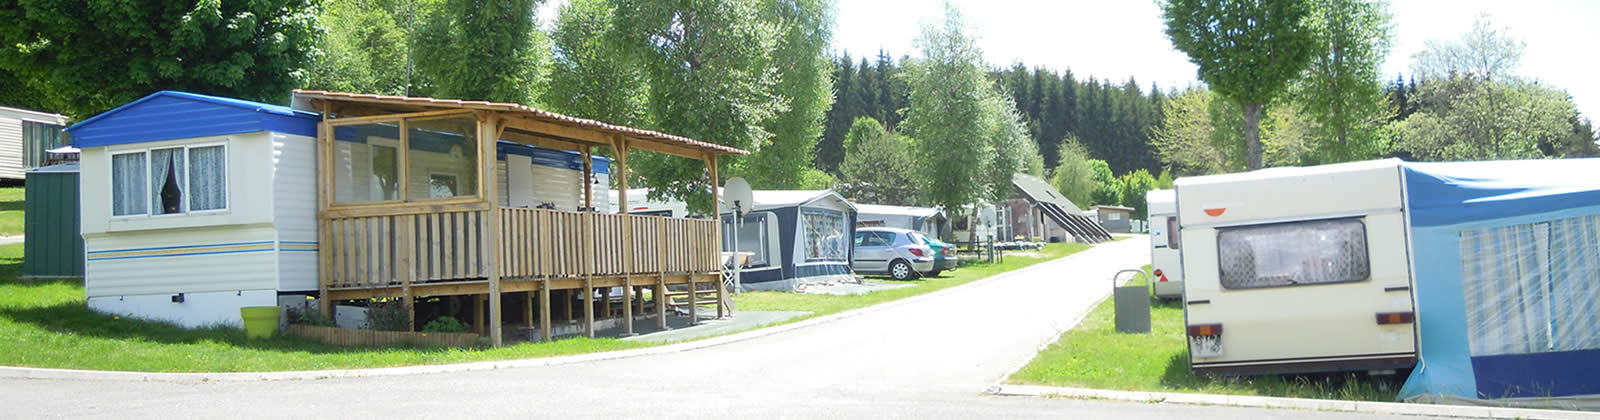 Camping Merle Leignec